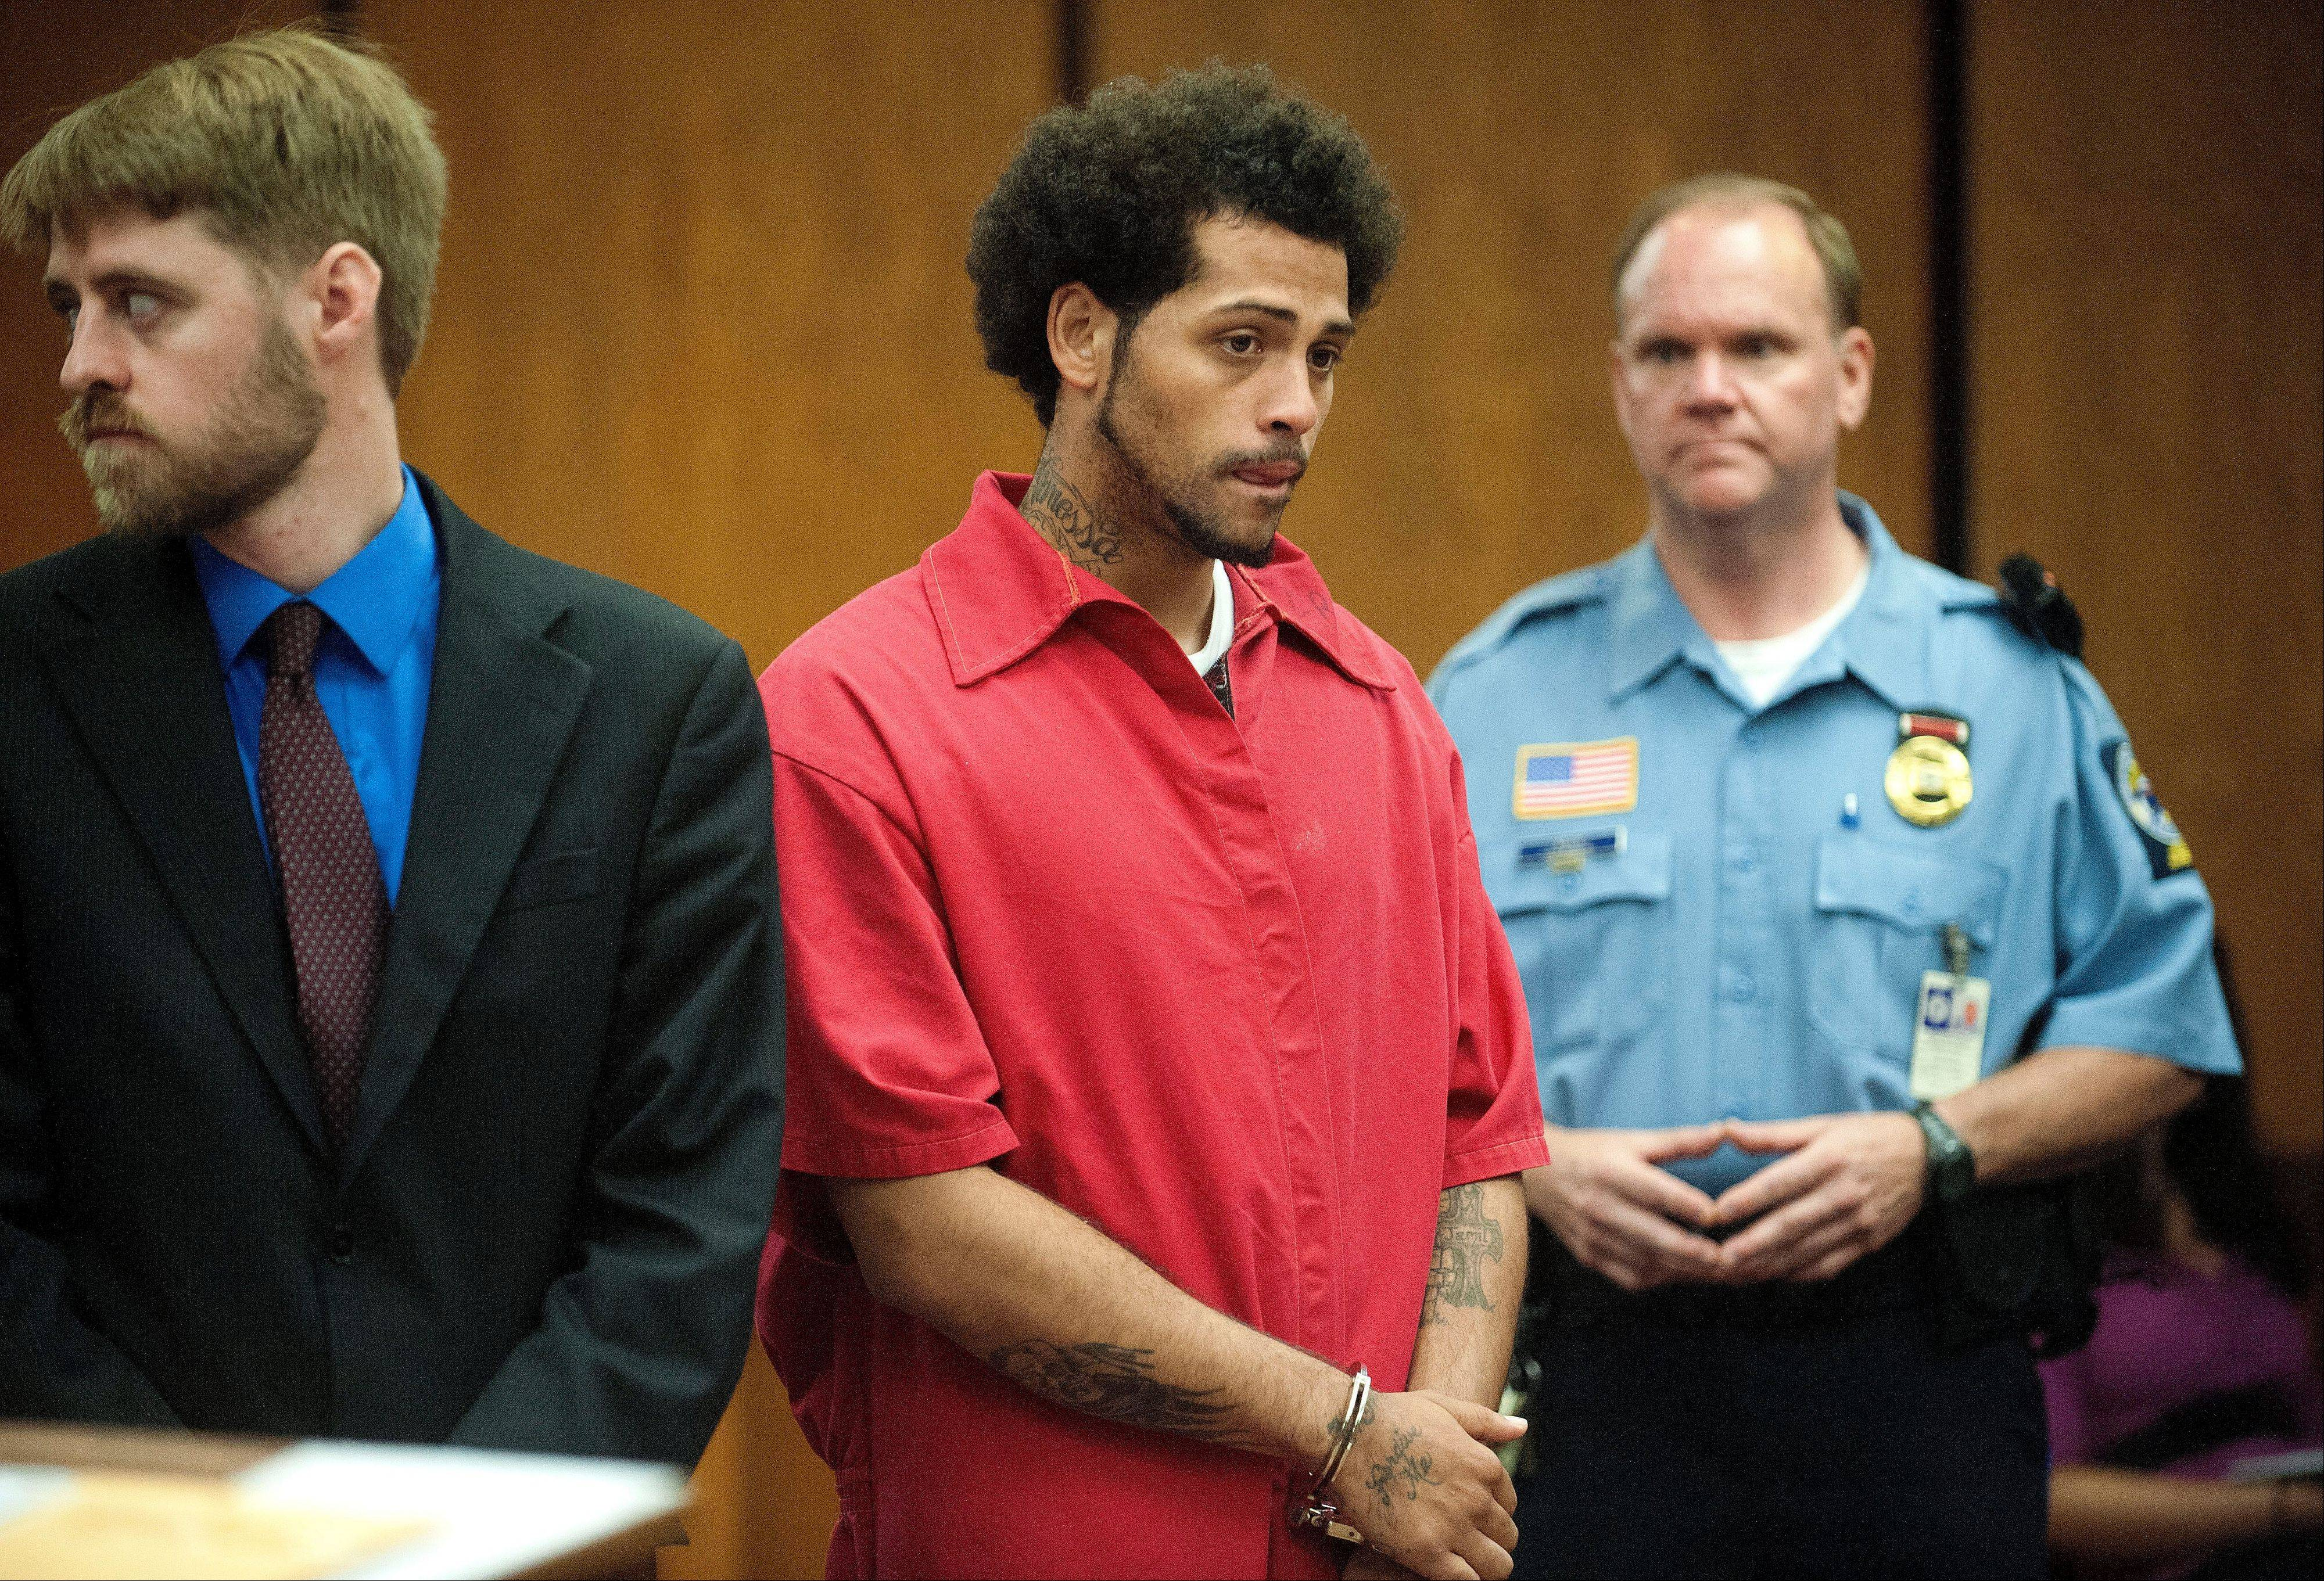 Carlos Ortiz, center, faces the court during a hearing Friday in Bristol, Conn.